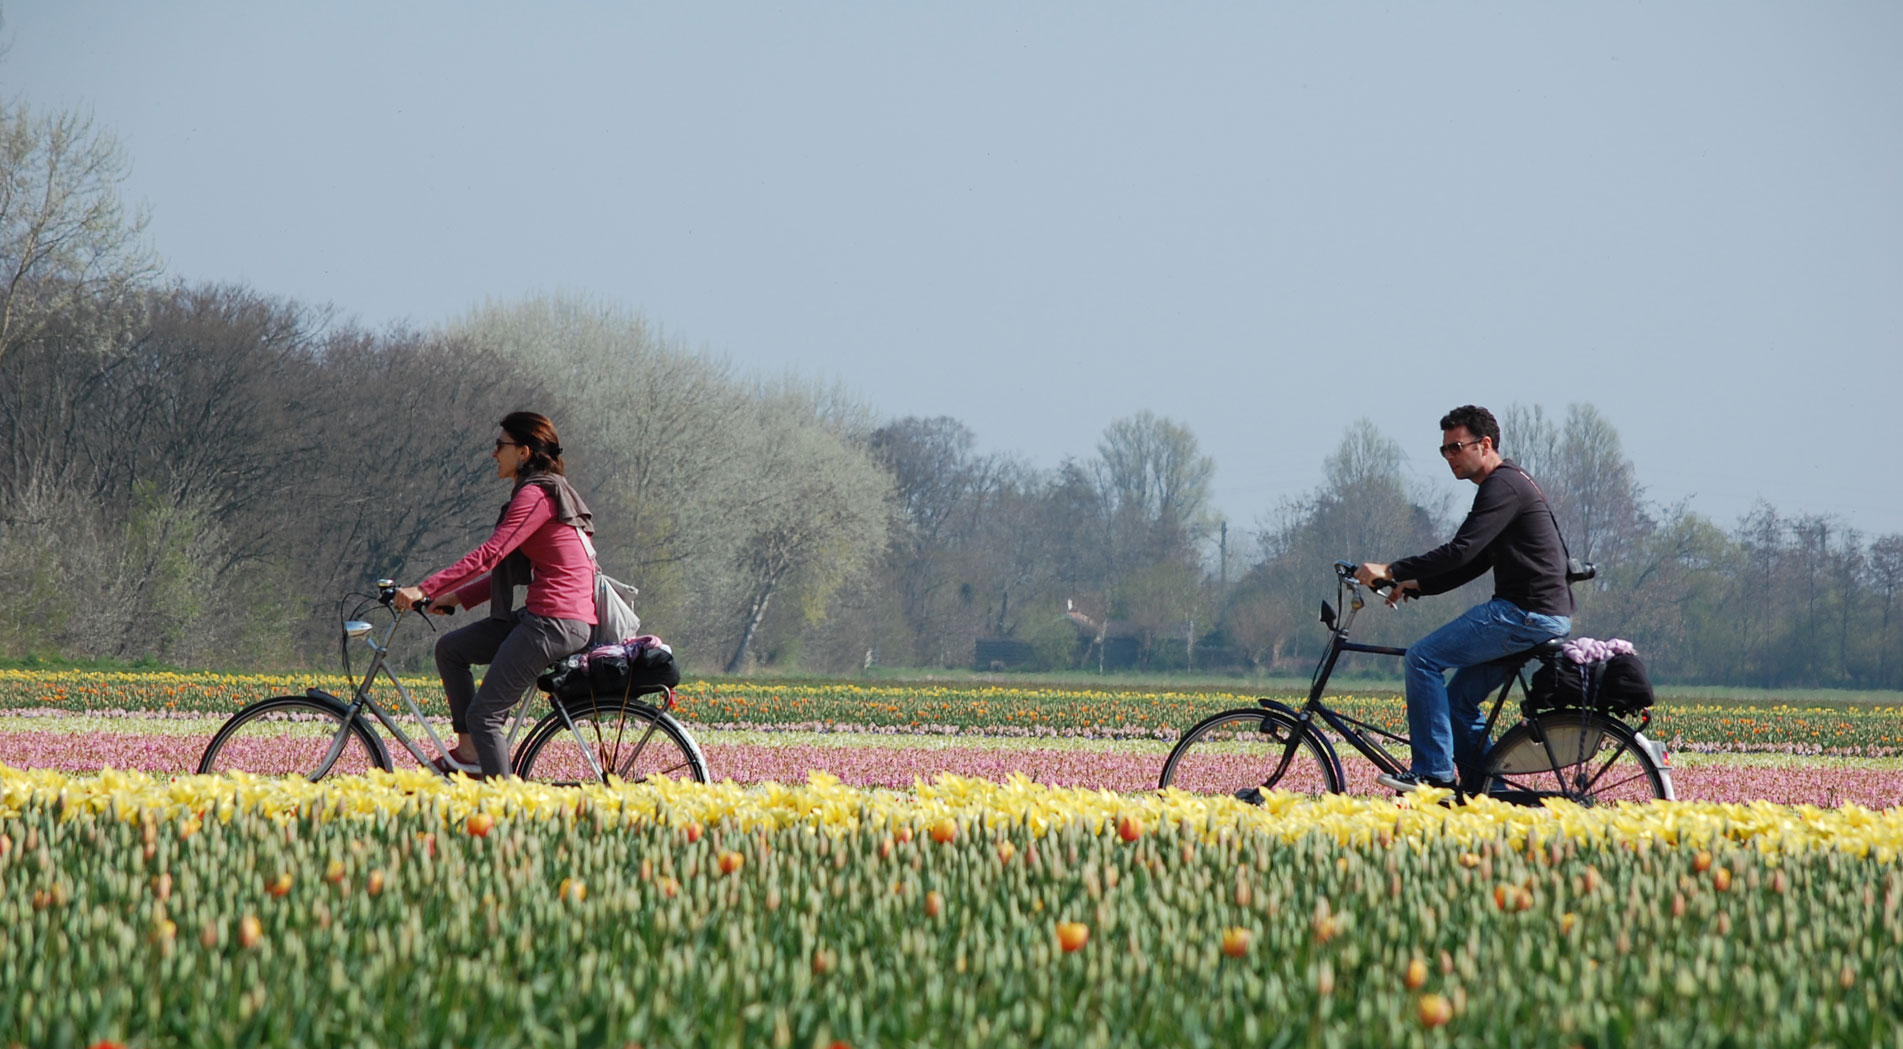 'A bicycle vacation in the Netherlands tailored just for me'